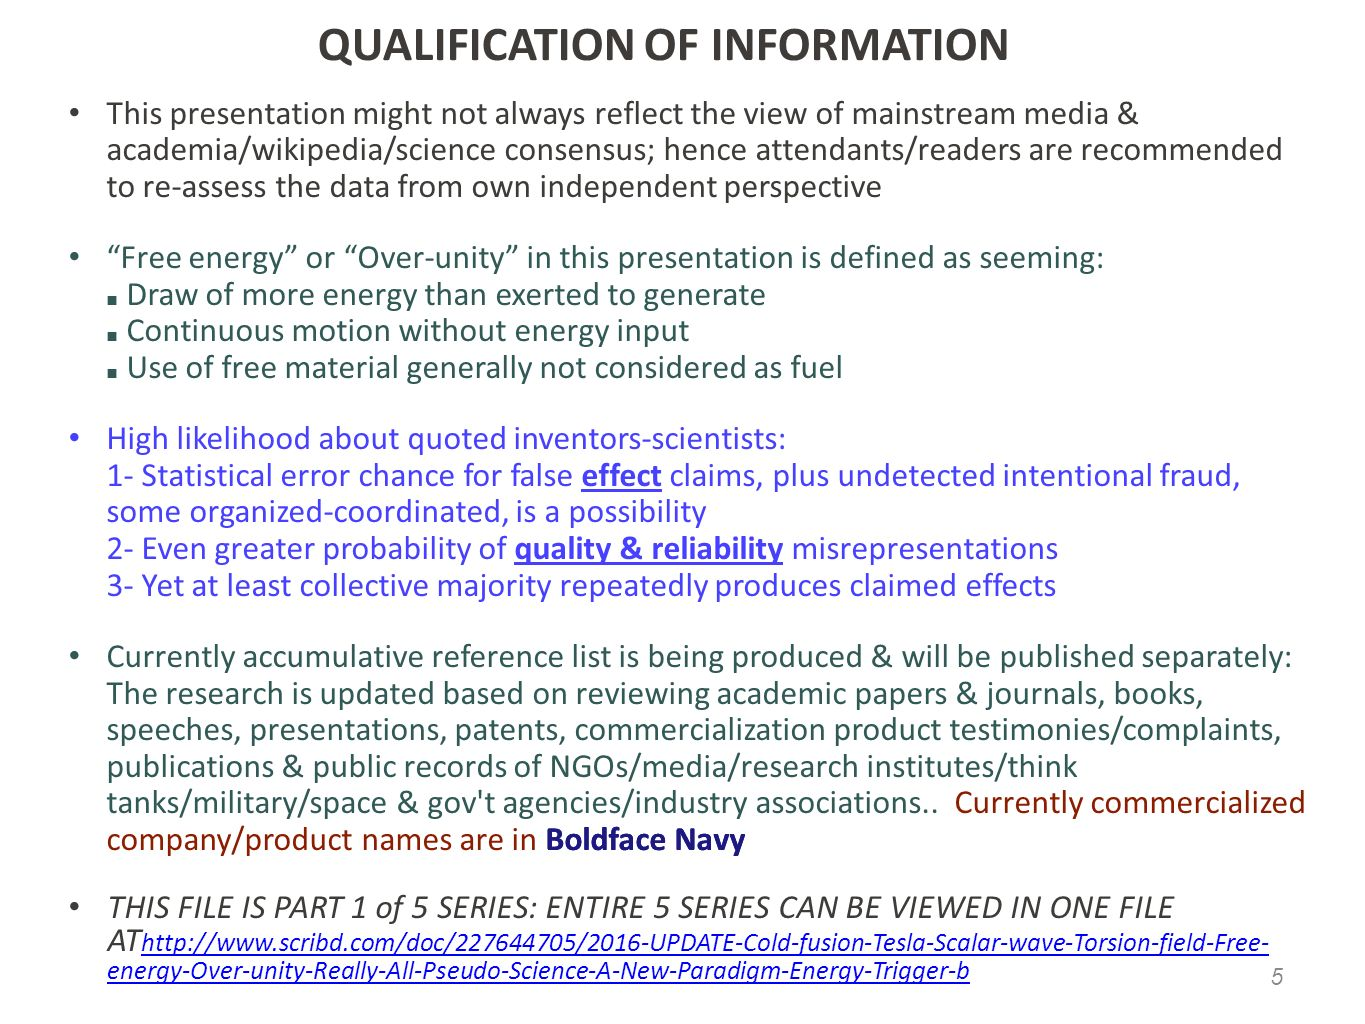 QUALIFICATION OF INFORMATION QUALIFICATION OF INFORMATION This presentation might not always reflect the view of mainstream media & academia/wikipedia/science consensus; hence attendants/readers are recommended to re-assess the data from own independent perspective This presentation might not always reflect the view of mainstream media & academia/wikipedia/science consensus; hence attendants/readers are recommended to re-assess the data from own independent perspective Free energy or Over-unity in this presentation is defined as seeming: ■ Draw of more energy than exerted to generate ■ Continuous motion without energy input ■ Use of free material generally not considered as fuel Free energy or Over-unity in this presentation is defined as seeming: ■ Draw of more energy than exerted to generate ■ Continuous motion without energy input ■ Use of free material generally not considered as fuel High likelihood about quoted inventors-scientists: 1- Statistical error chance for false effect claims, plus undetected intentional fraud, some organized-coordinated, is a possibility 2- Even greater probability of quality & reliability misrepresentations 3- Yet at least collective majority repeatedly produces claimed effects High likelihood about quoted inventors-scientists: 1- Statistical error chance for false effect claims, plus undetected intentional fraud, some organized-coordinated, is a possibility 2- Even greater probability of quality & reliability misrepresentations 3- Yet at least collective majority repeatedly produces claimed effects Currently accumulative reference list is being produced & will be published separately: The research is updated based on reviewing academic papers & journals, books, speeches, presentations, patents, commercialization product testimonies/complaints, publications & public records of NGOs/media/research institutes/think tanks/military/space & gov t agencies/industry associations..